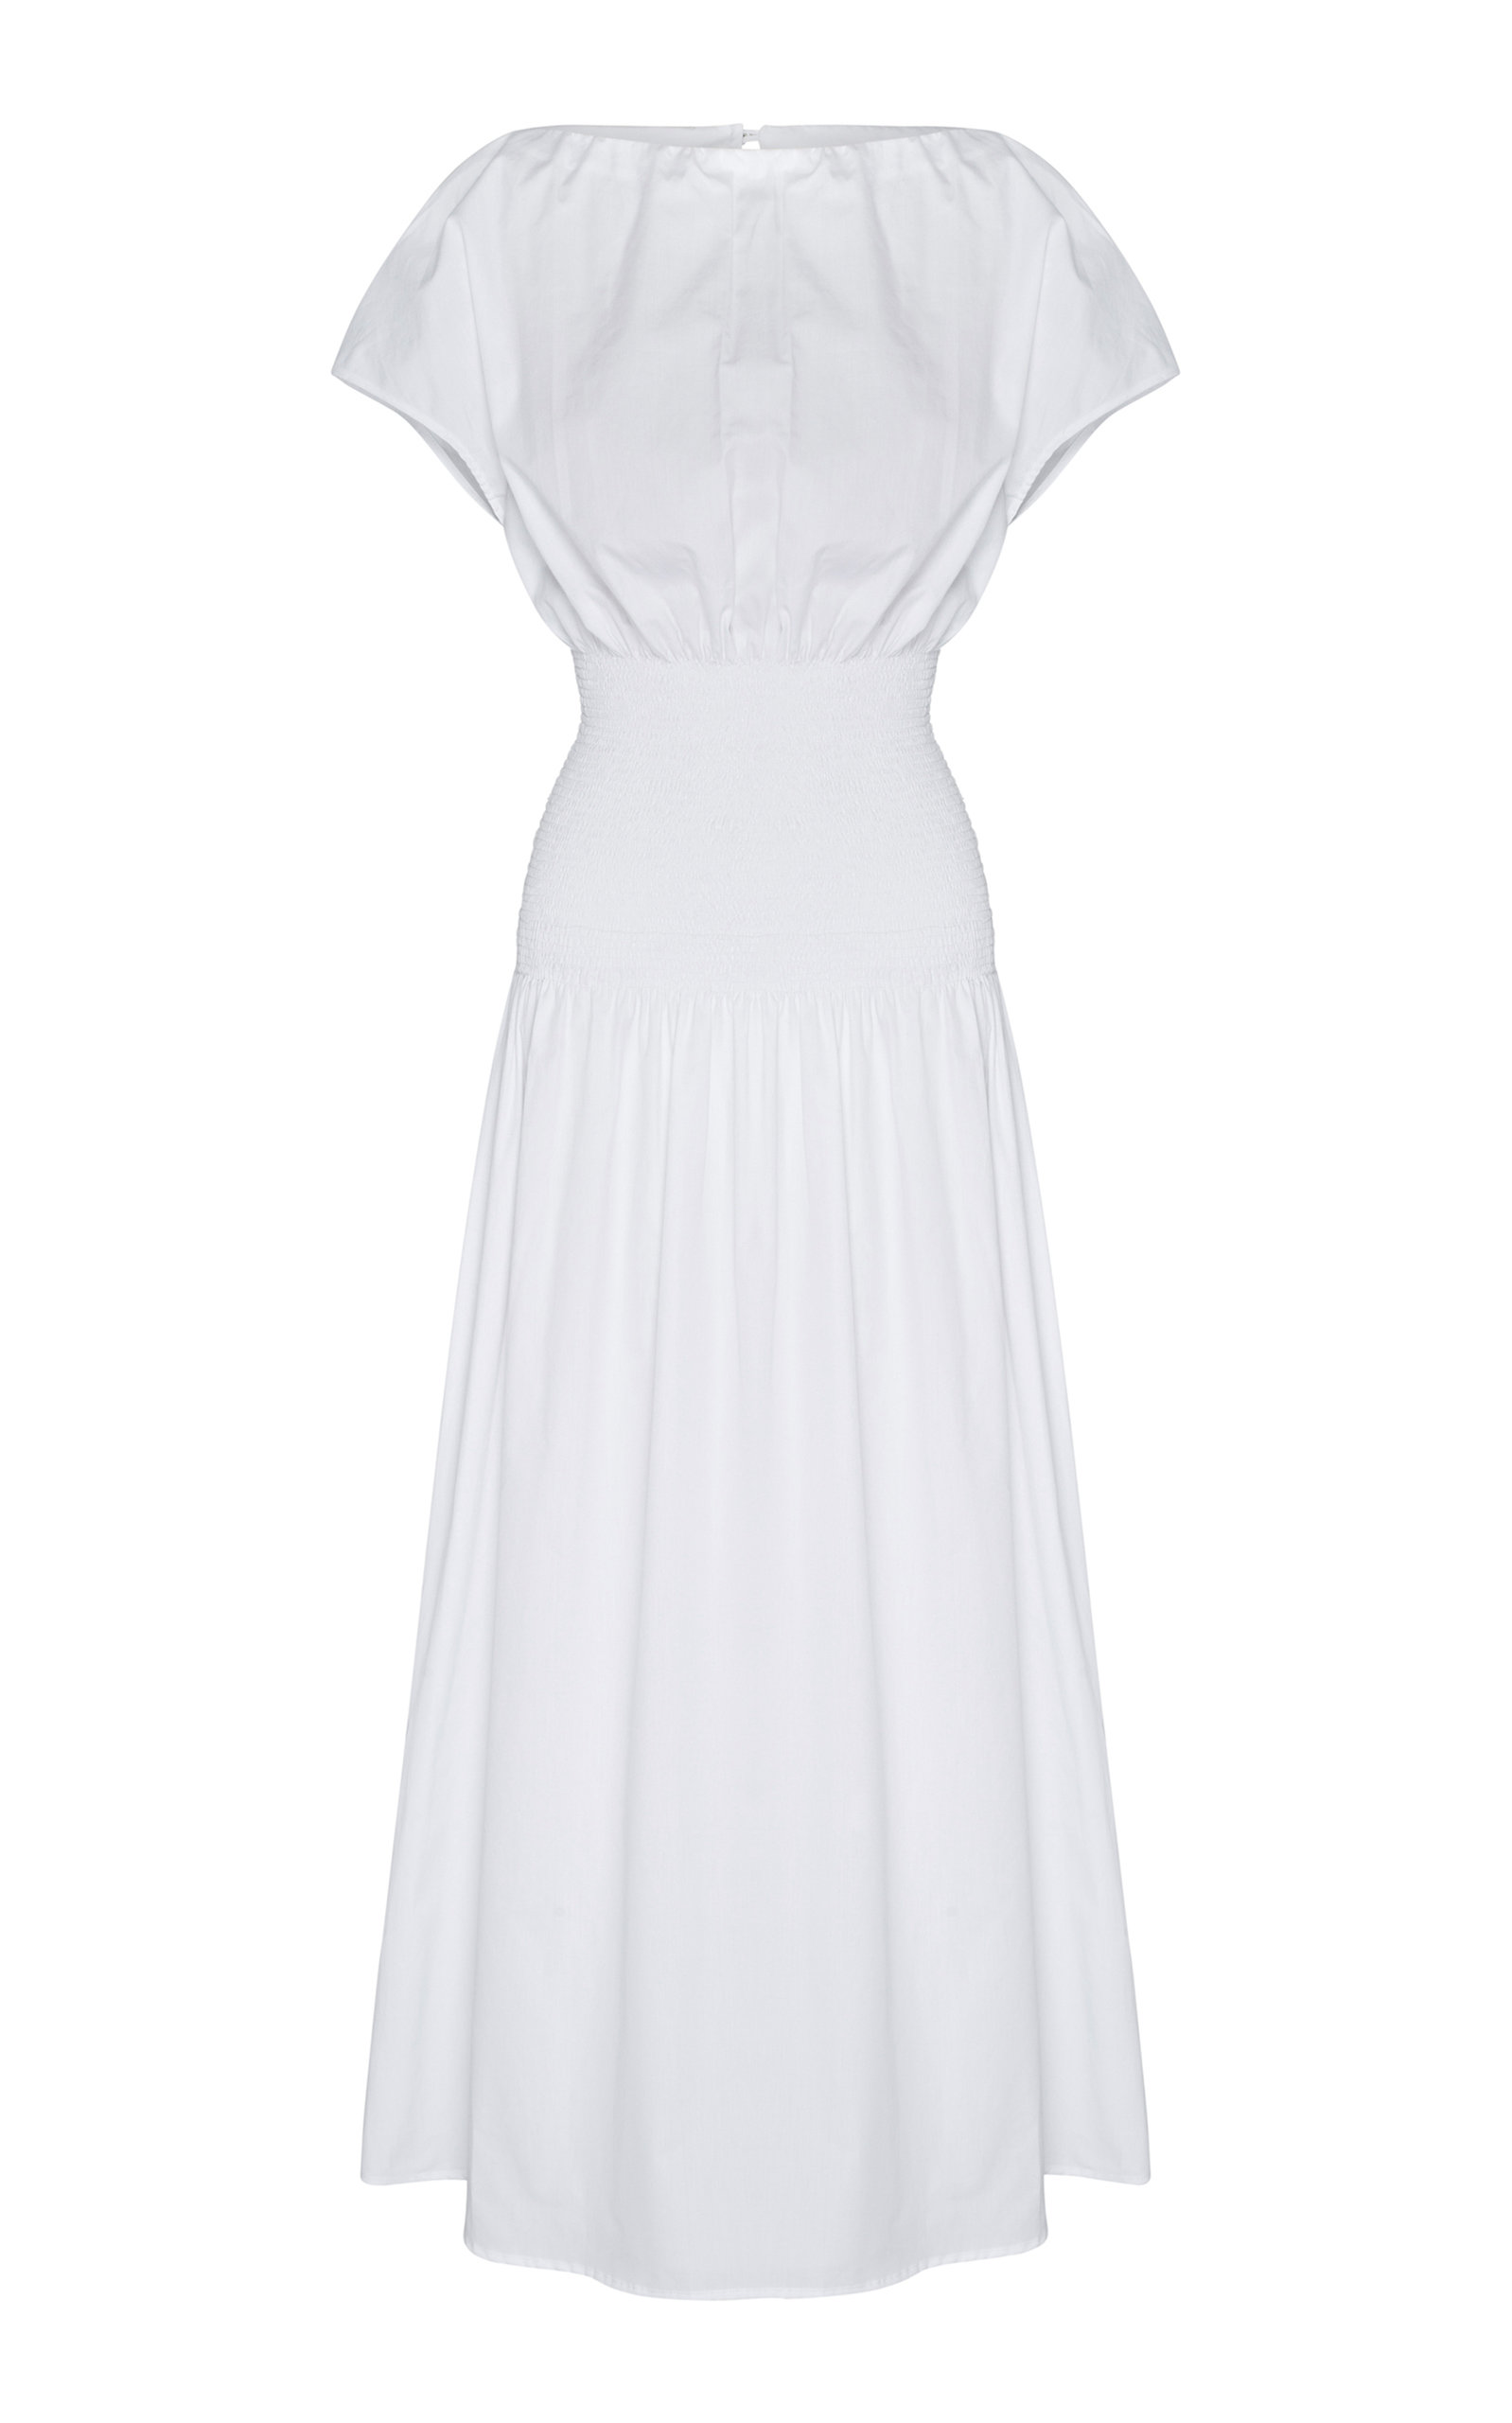 Buy Anna Quan Emma-Kate Shirred Cotton-Poplin Midi Dress online, shop Anna Quan at the best price